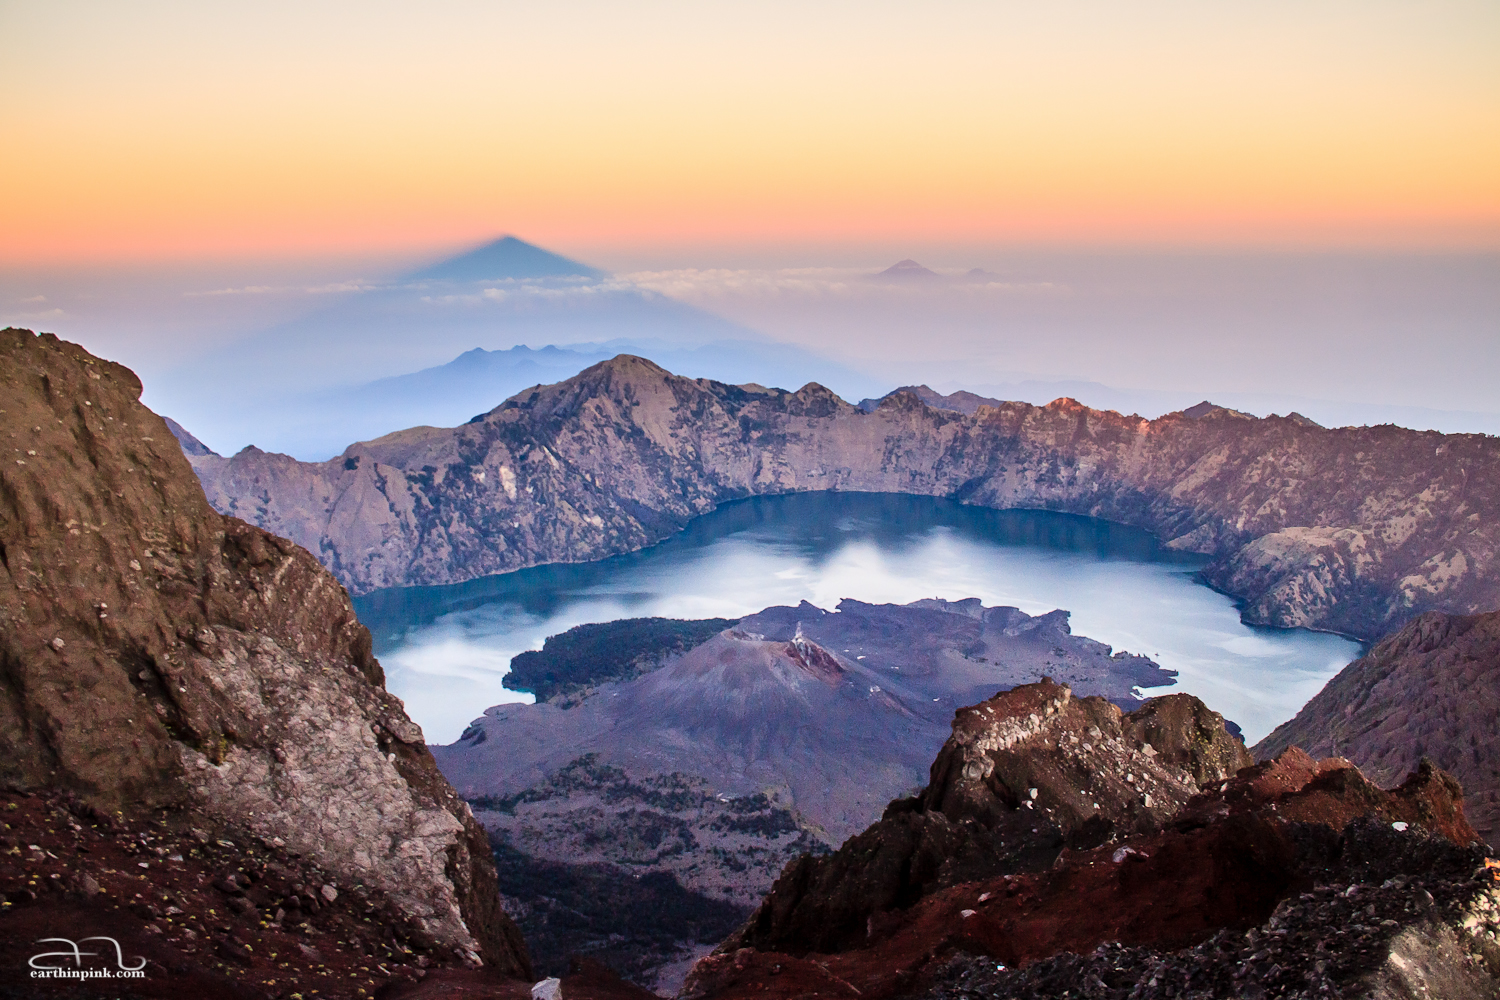 Sunrise from the peak of Gunung Rinjani, Lombok, Indonesia (3726m) showing both the crater lake and the shadow of the volcano.